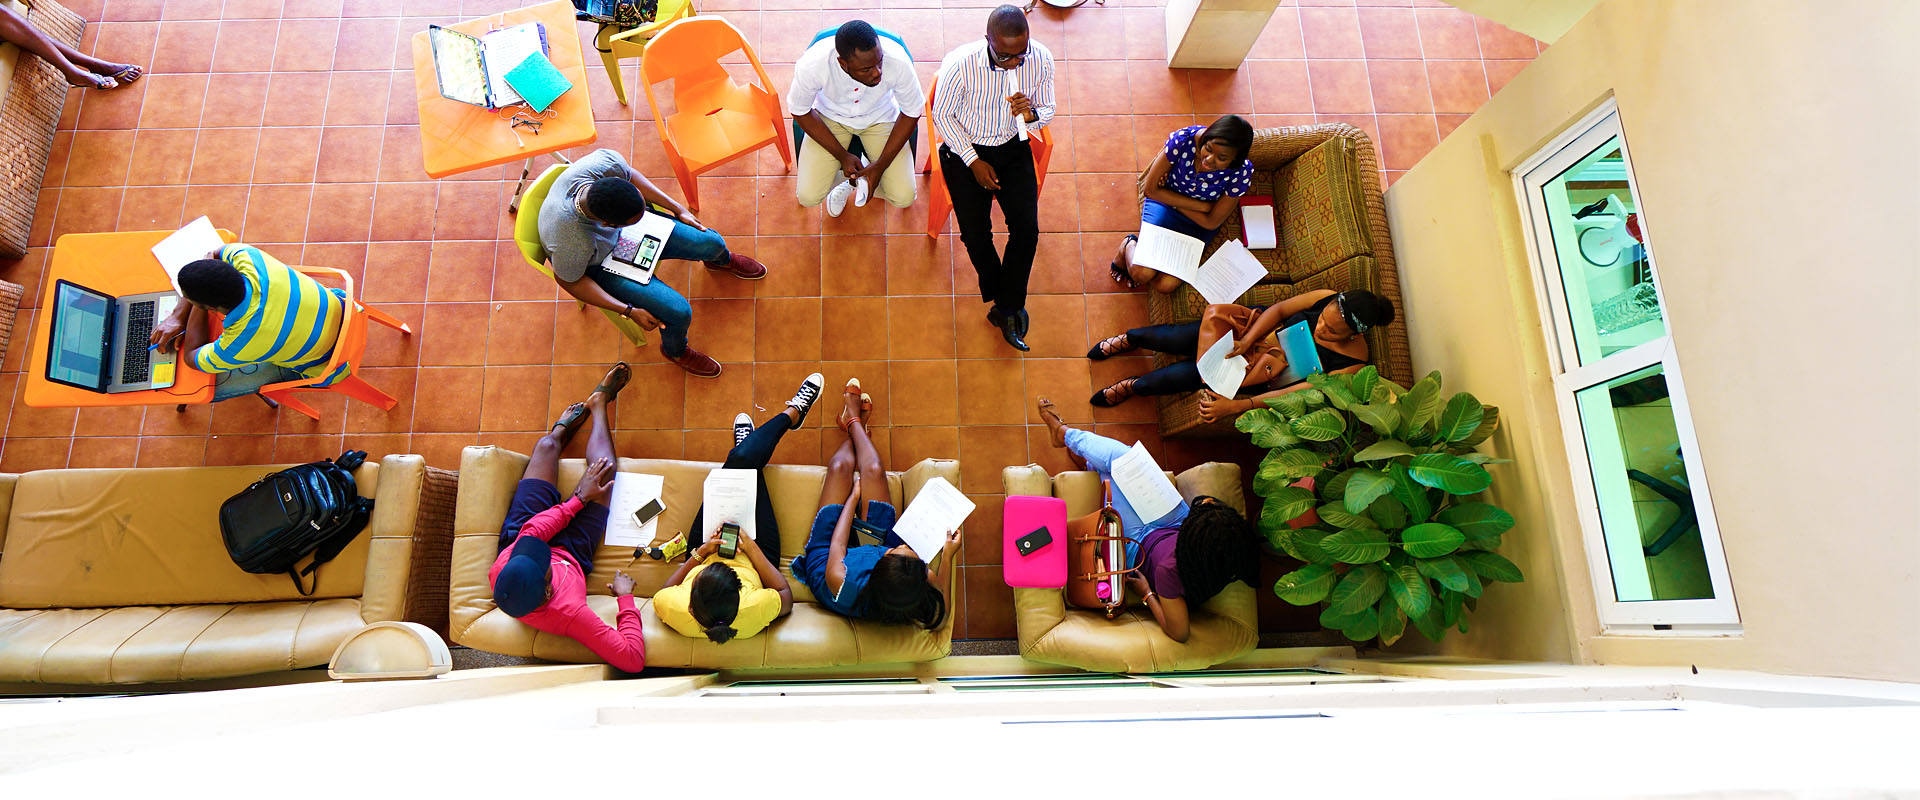 <p>Follow our new blog on Medium to read stories about life at Ashesi</p>